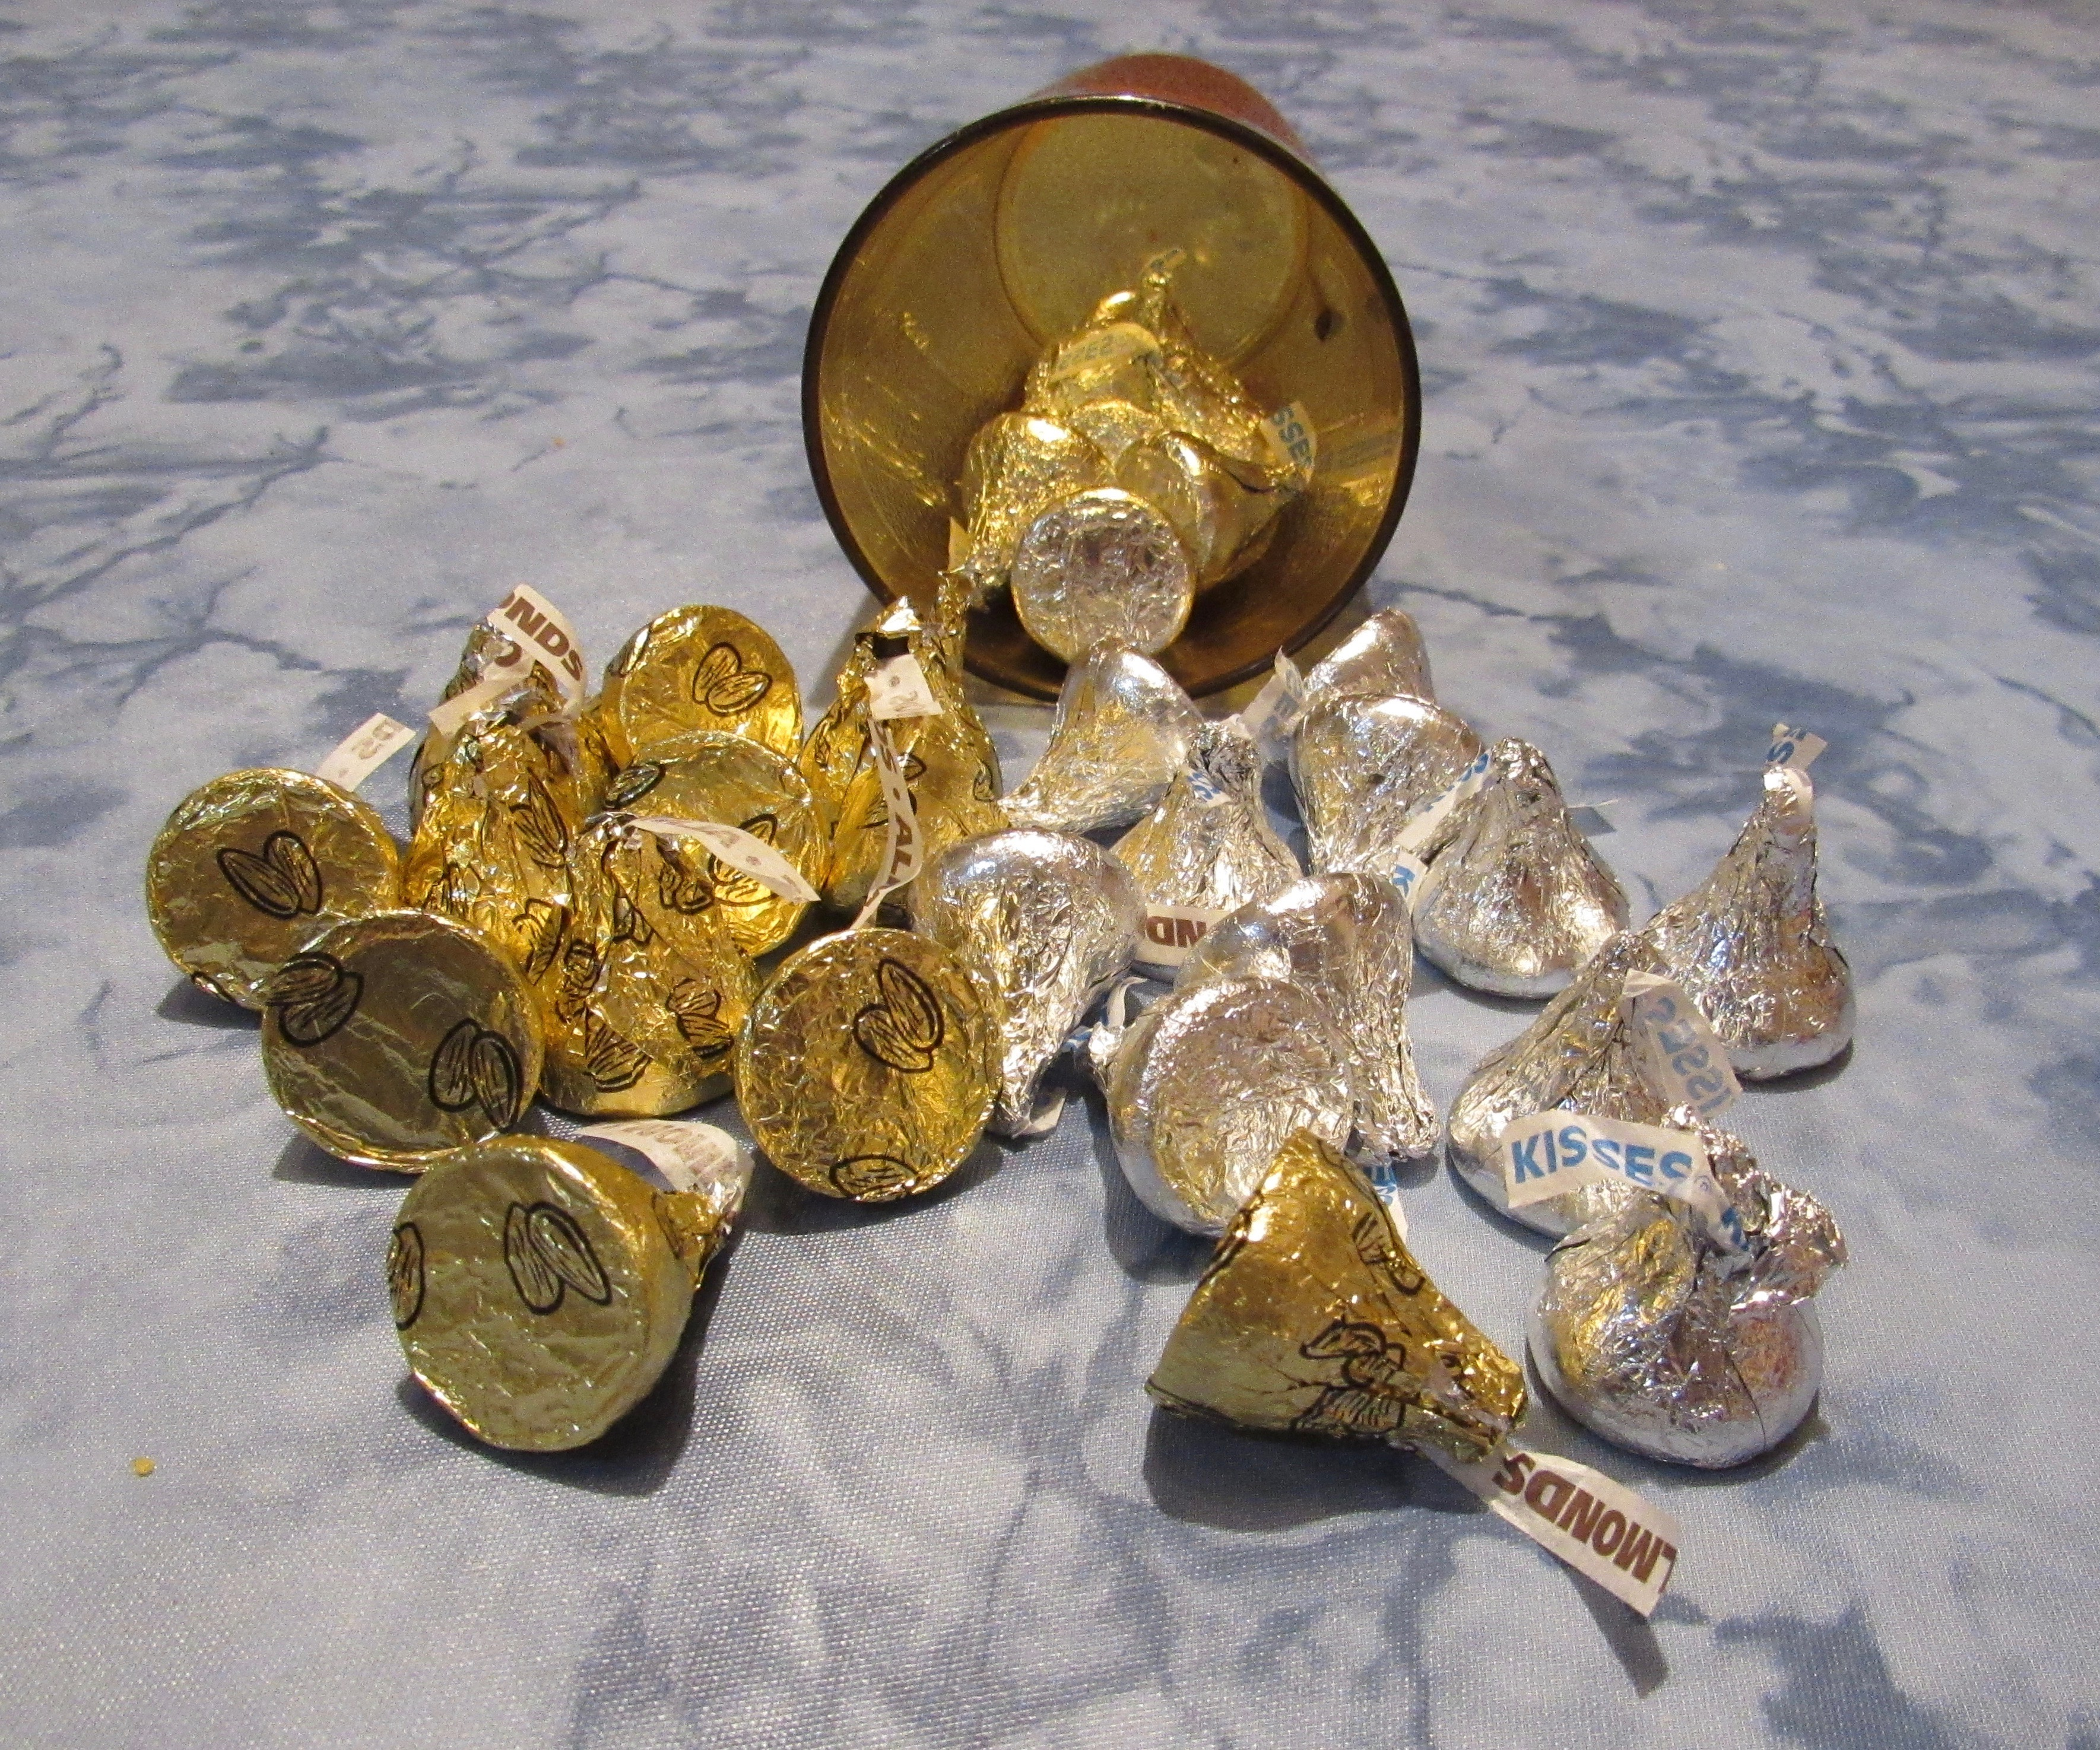 Picture of the Hershey Kisses candy used in this activity